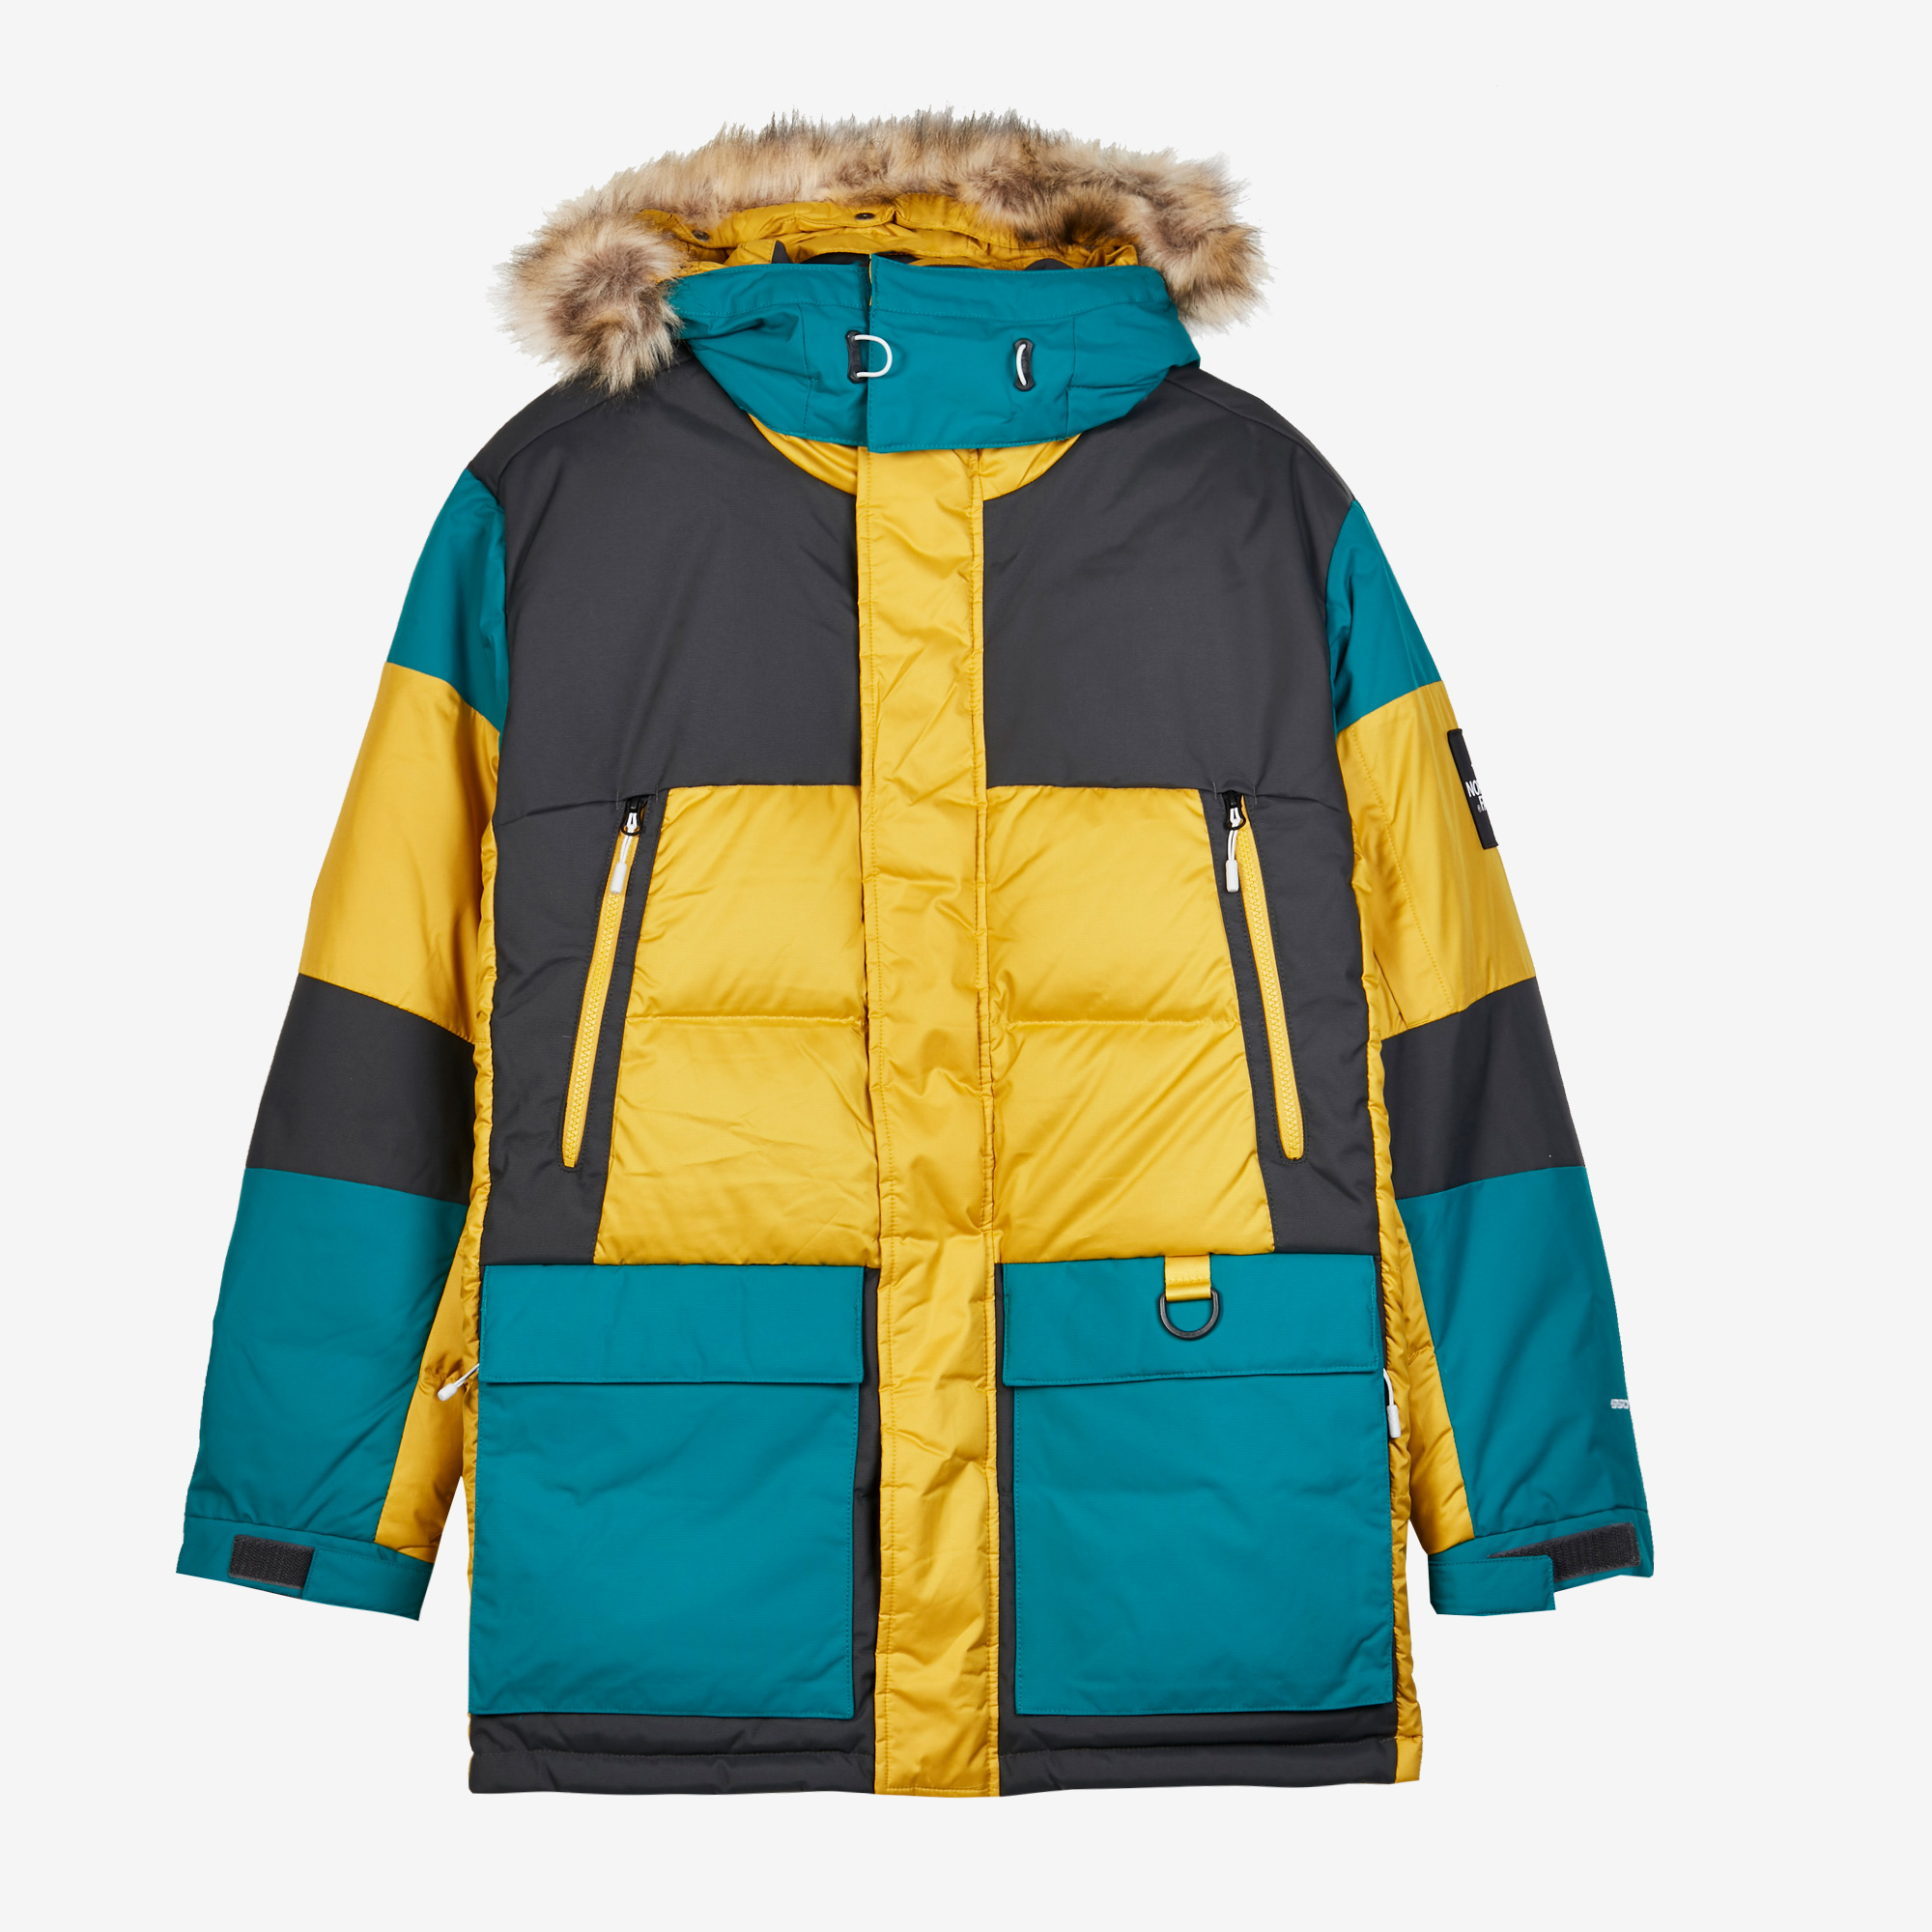 lowest price eaca1 f607b The North Face M Vostok Parka - T93l2ivb6 - Sneakersnstuff ...